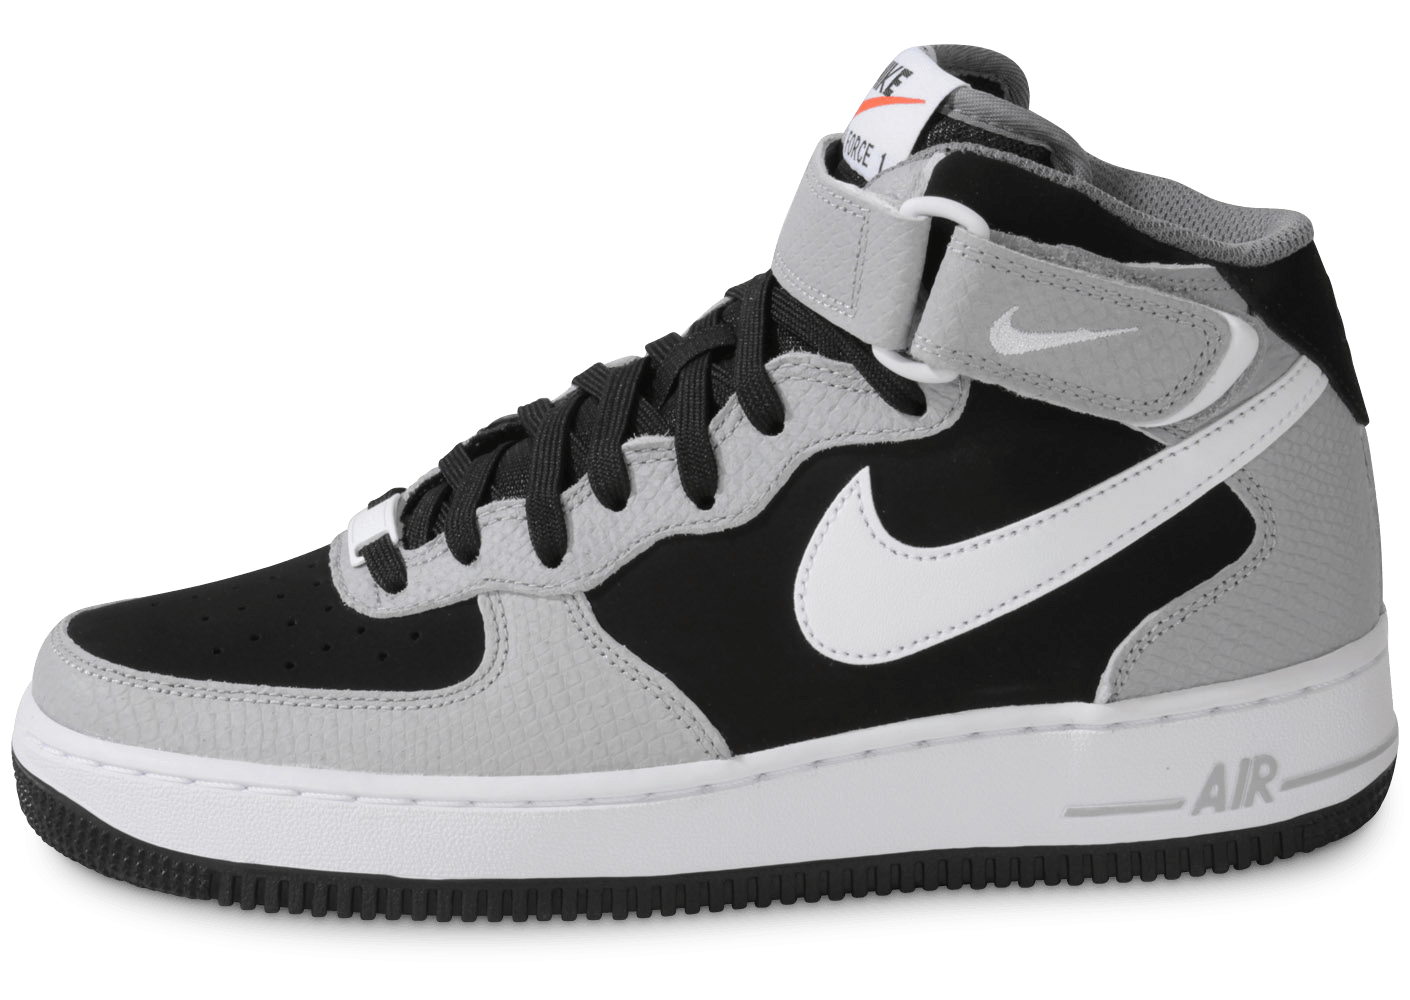 nike air force 1 mid black wolf grey chaussures homme. Black Bedroom Furniture Sets. Home Design Ideas